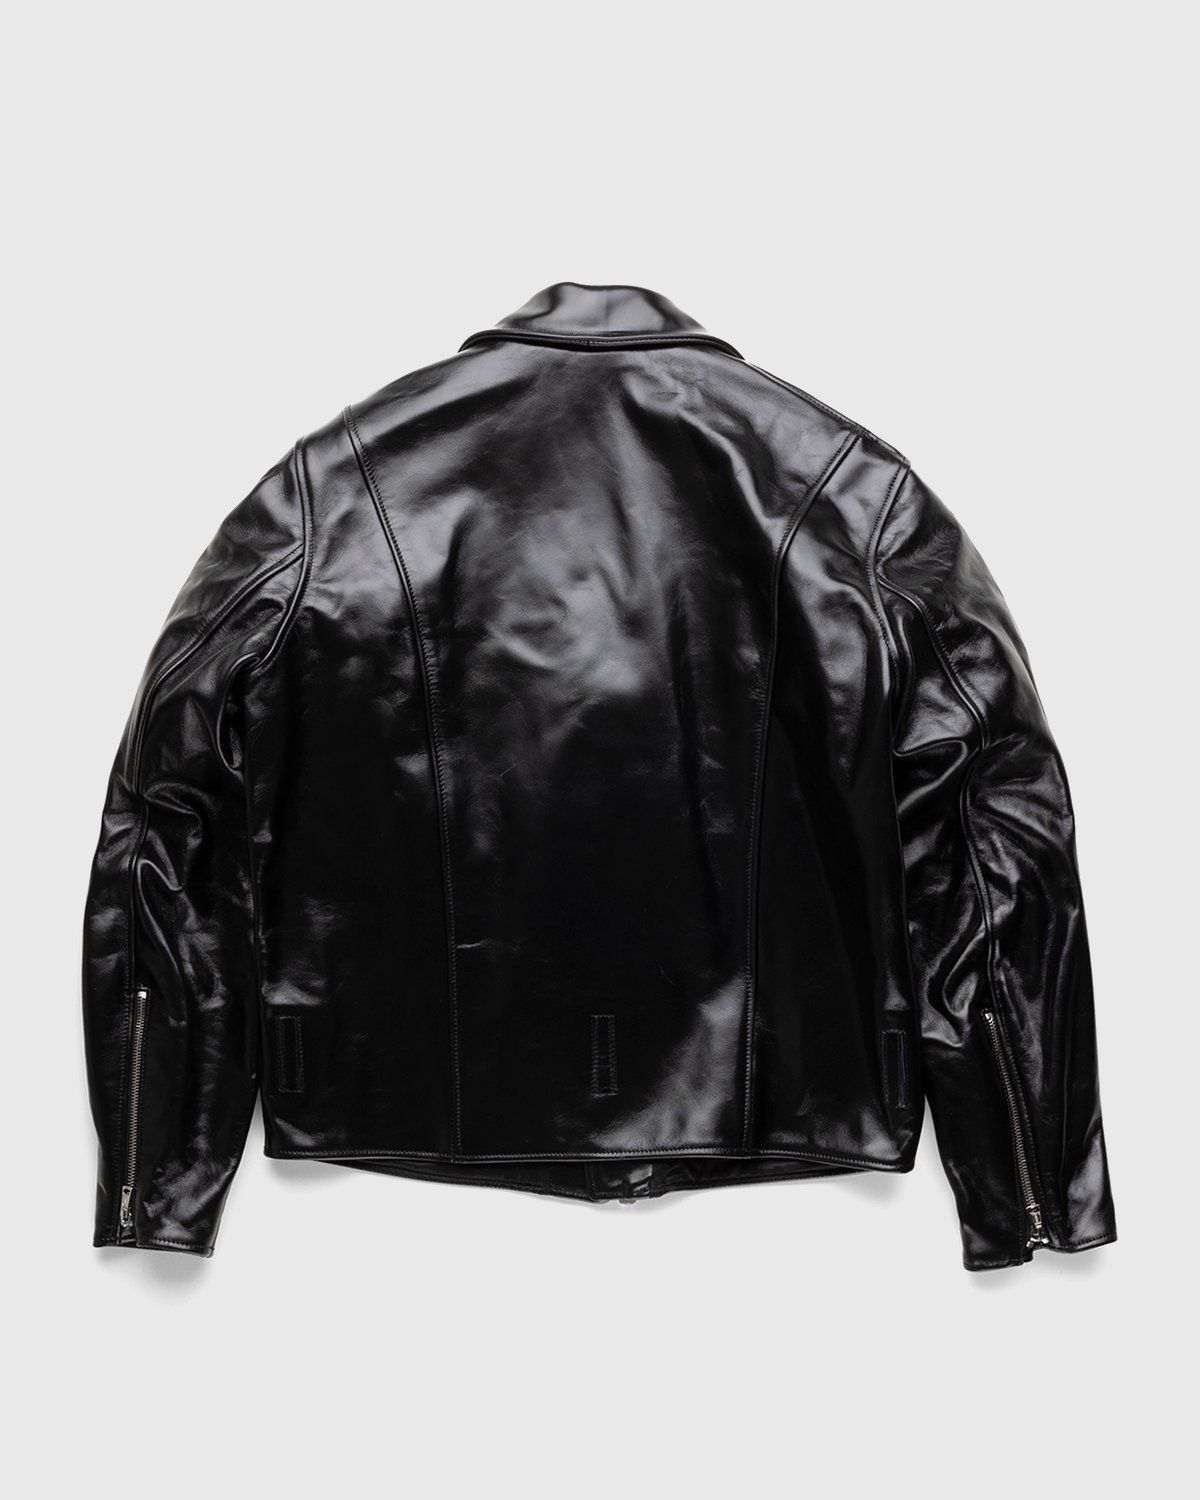 Our Legacy – Hellraiser Leather Jacket Aamon Black - Image 2